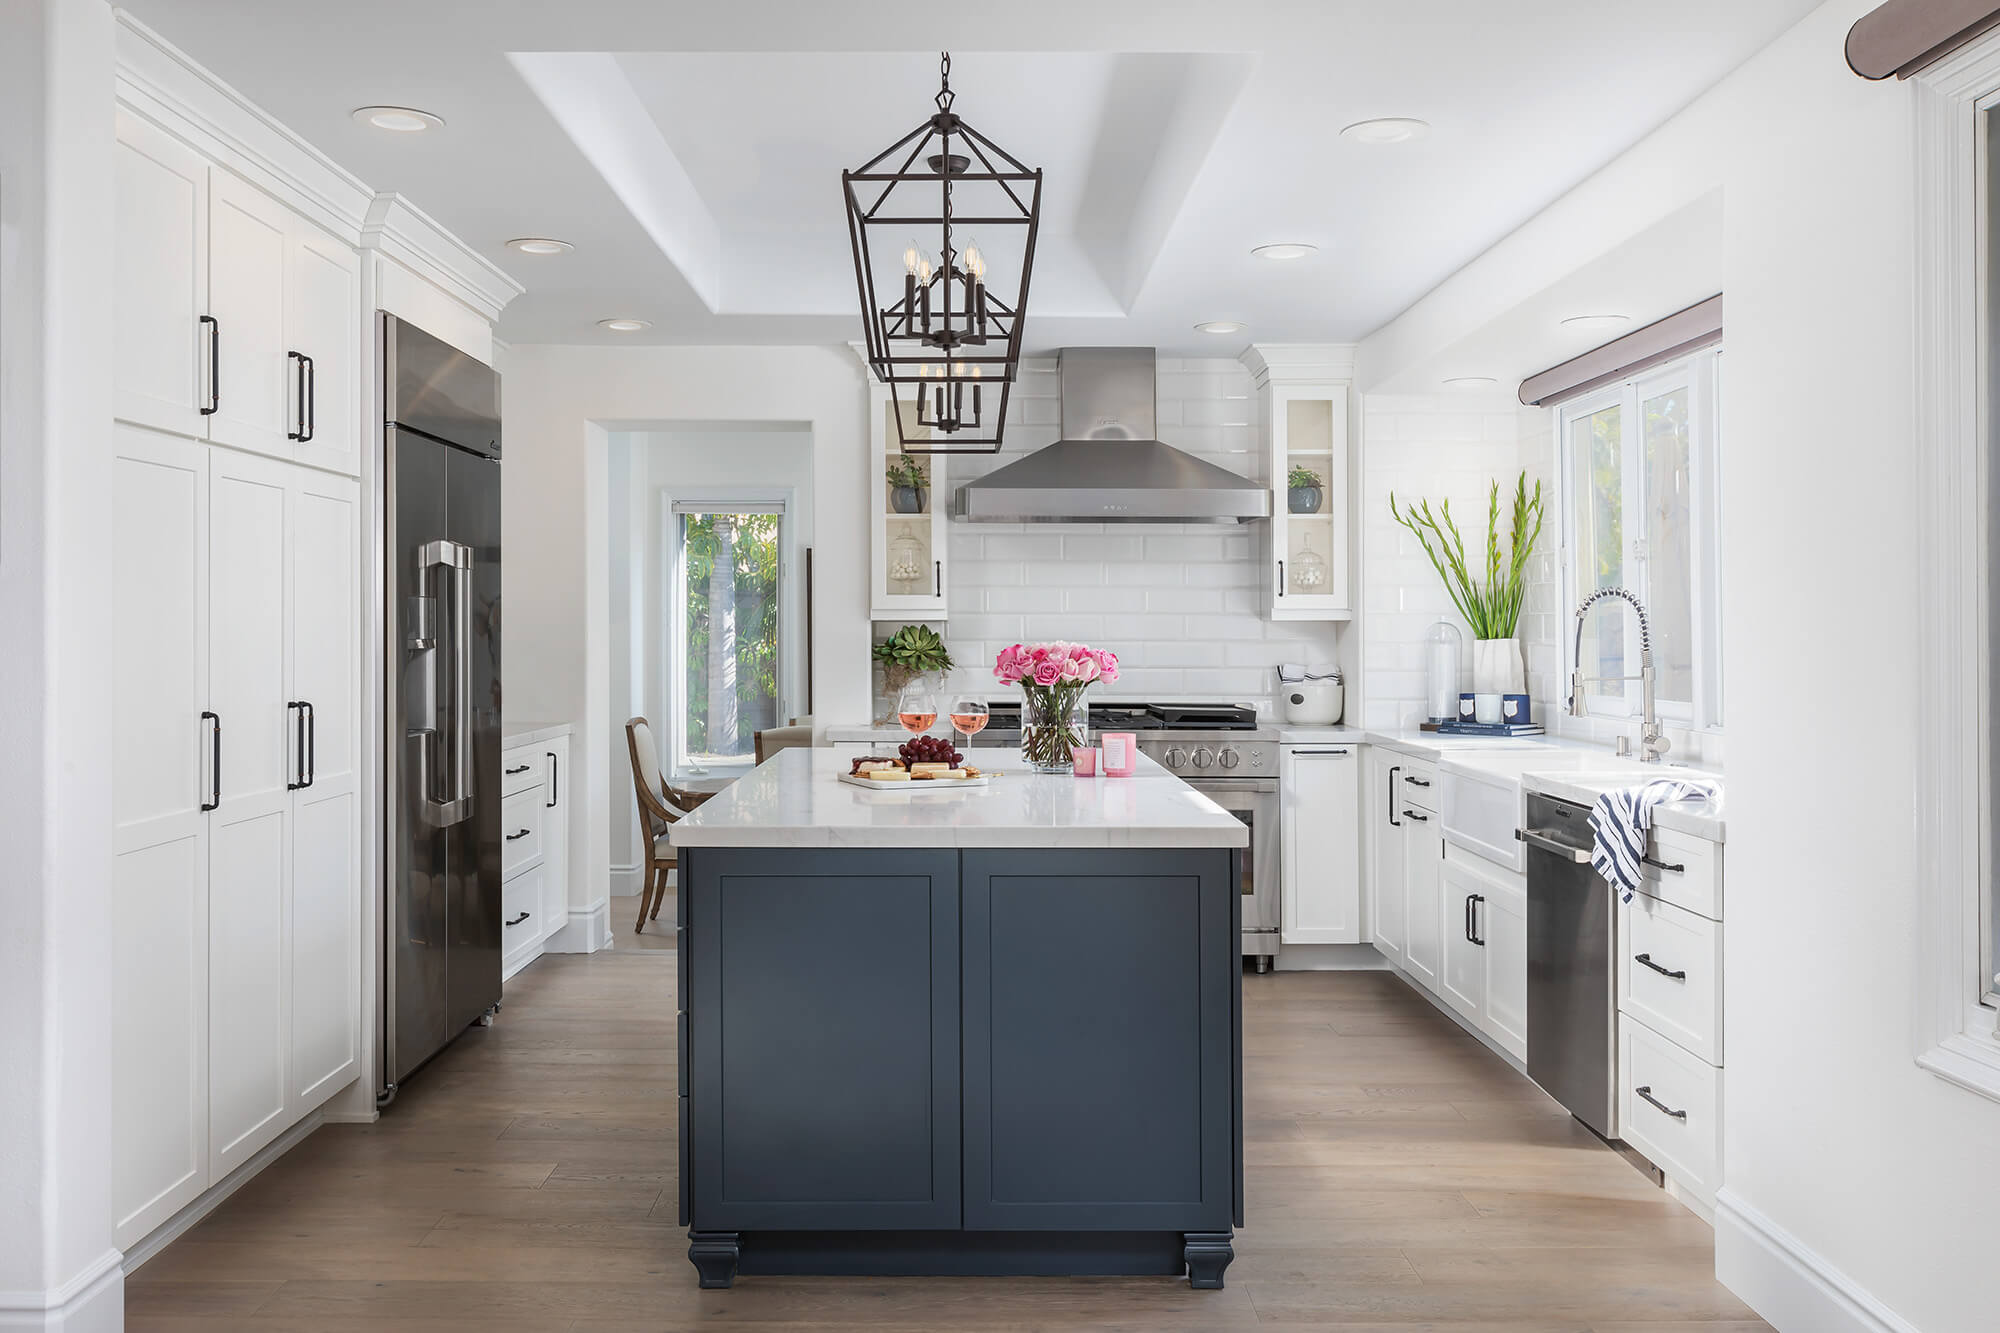 Kitchen design and build remodeling